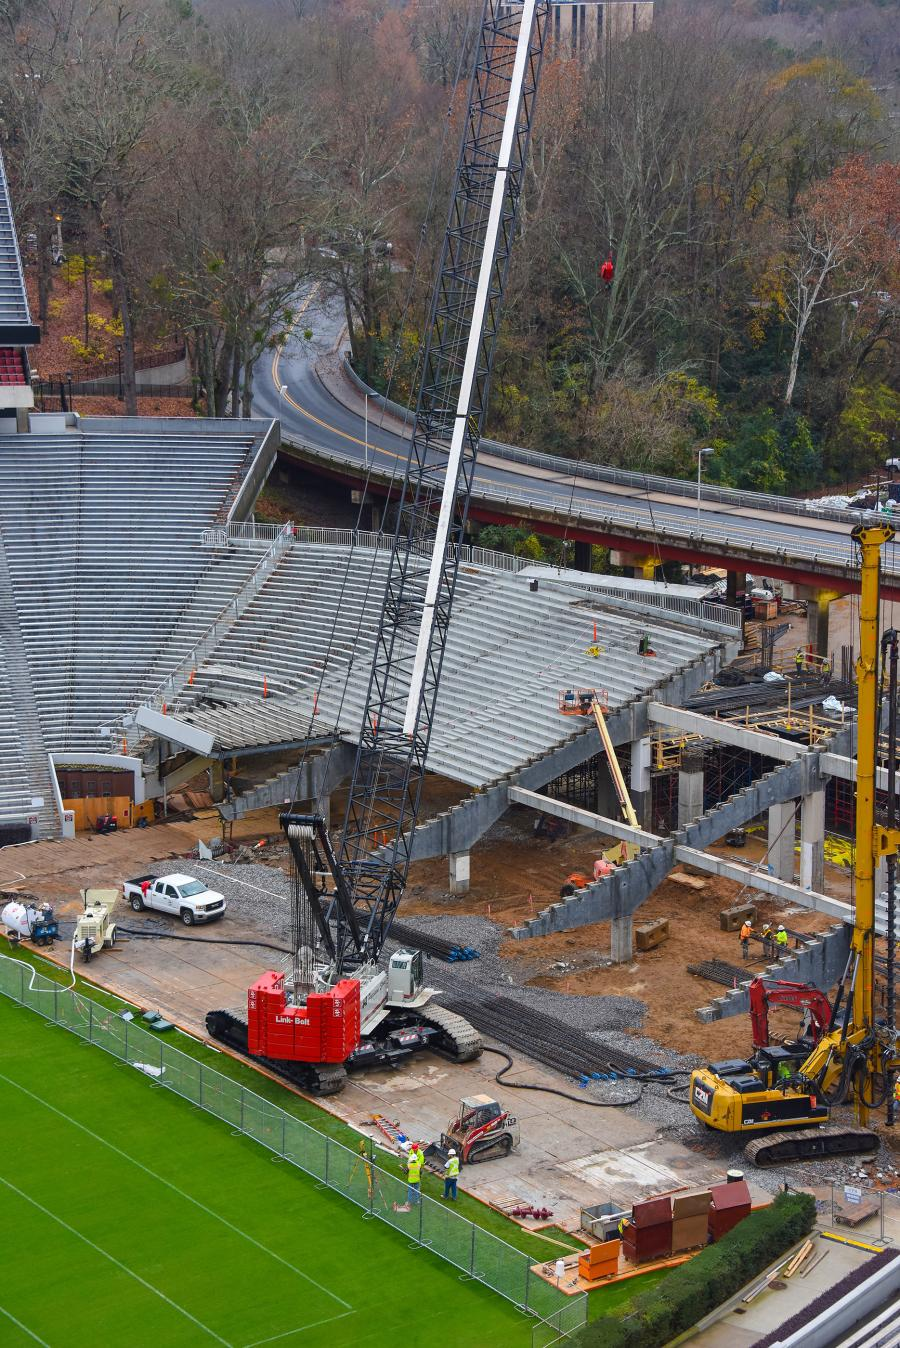 Bleacher supports weighing up to 30,000 lbs. (13,607.7 kg) are removed by a Link-Belt 348 H5 at University of Georgia in Athens, Ga.